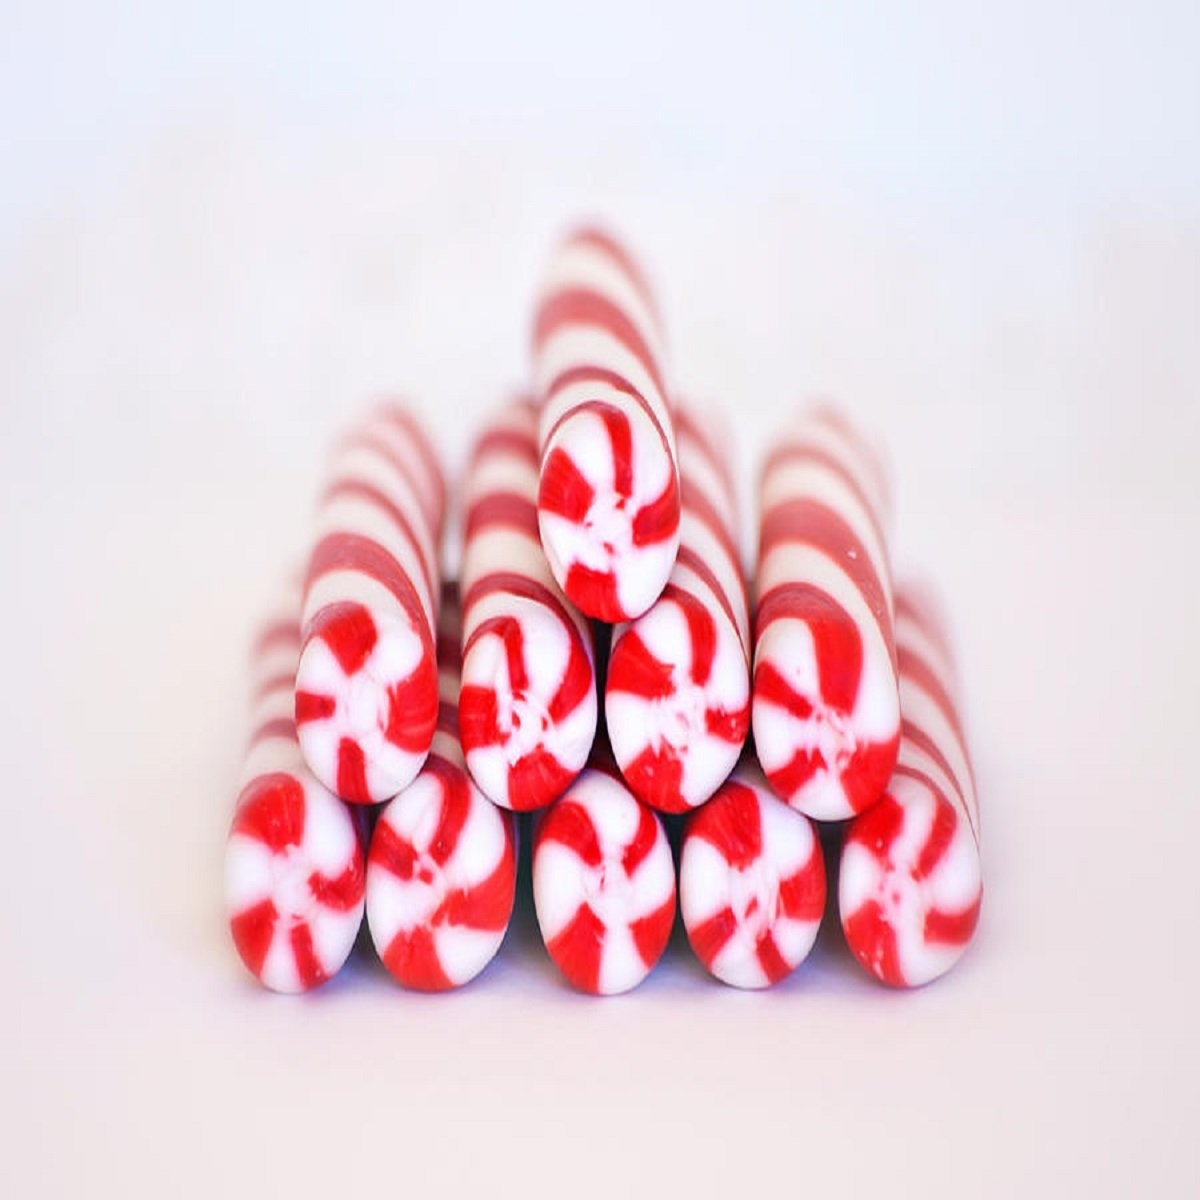 PEPPERMINT TWIST FRAGRANCE OIL - 8 OZ - FOR CANDLE & SOAP MAKING BY VIRGINIA CANDLE SUPPLY - FREE S&H IN USA